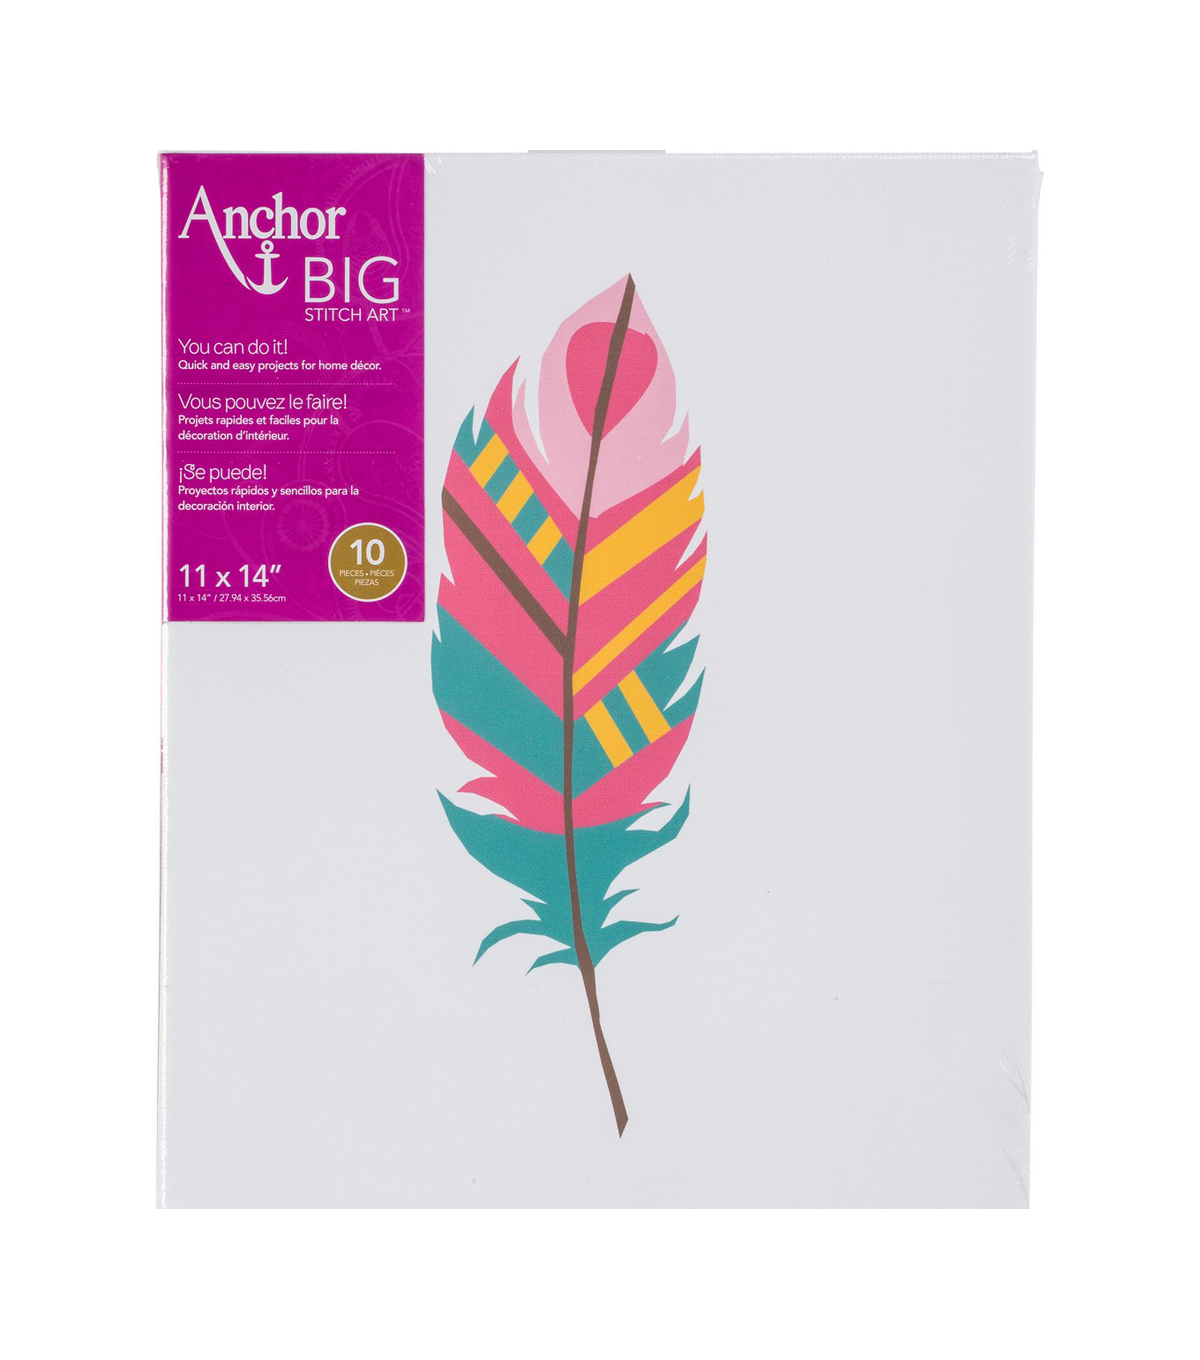 Anchor Big Stitch Art Stamped Embroidery Kit-Feather on Canvas